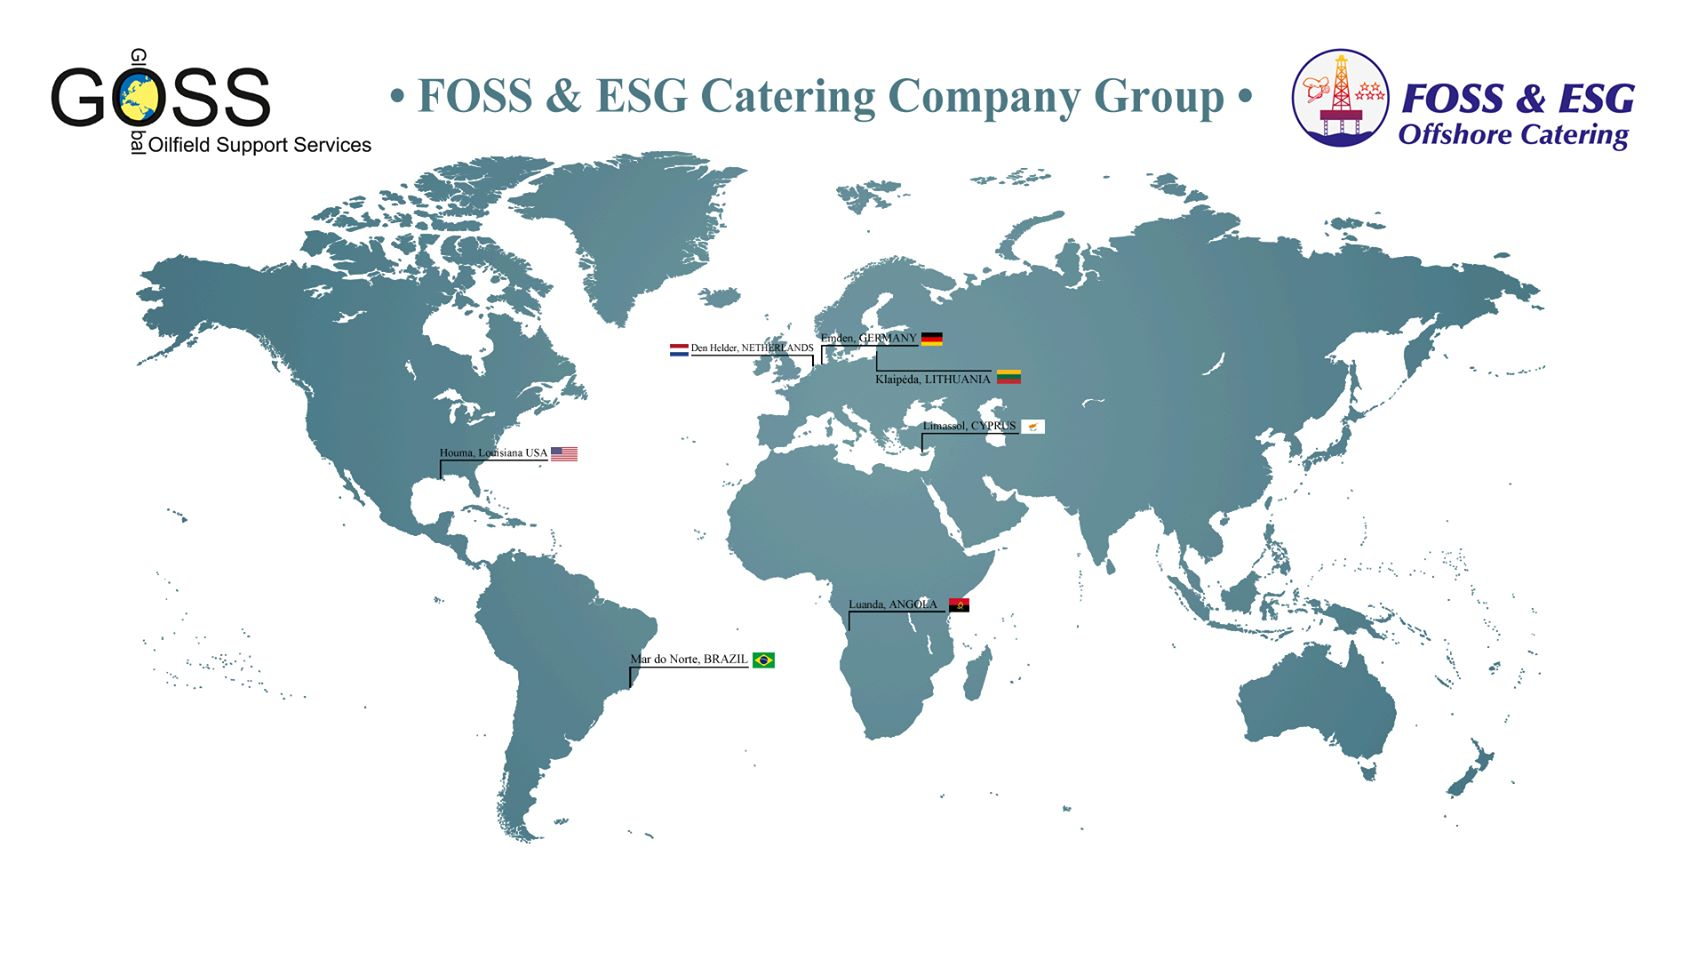 FOSS & ESG Catering Cover Image on XploreCyprus